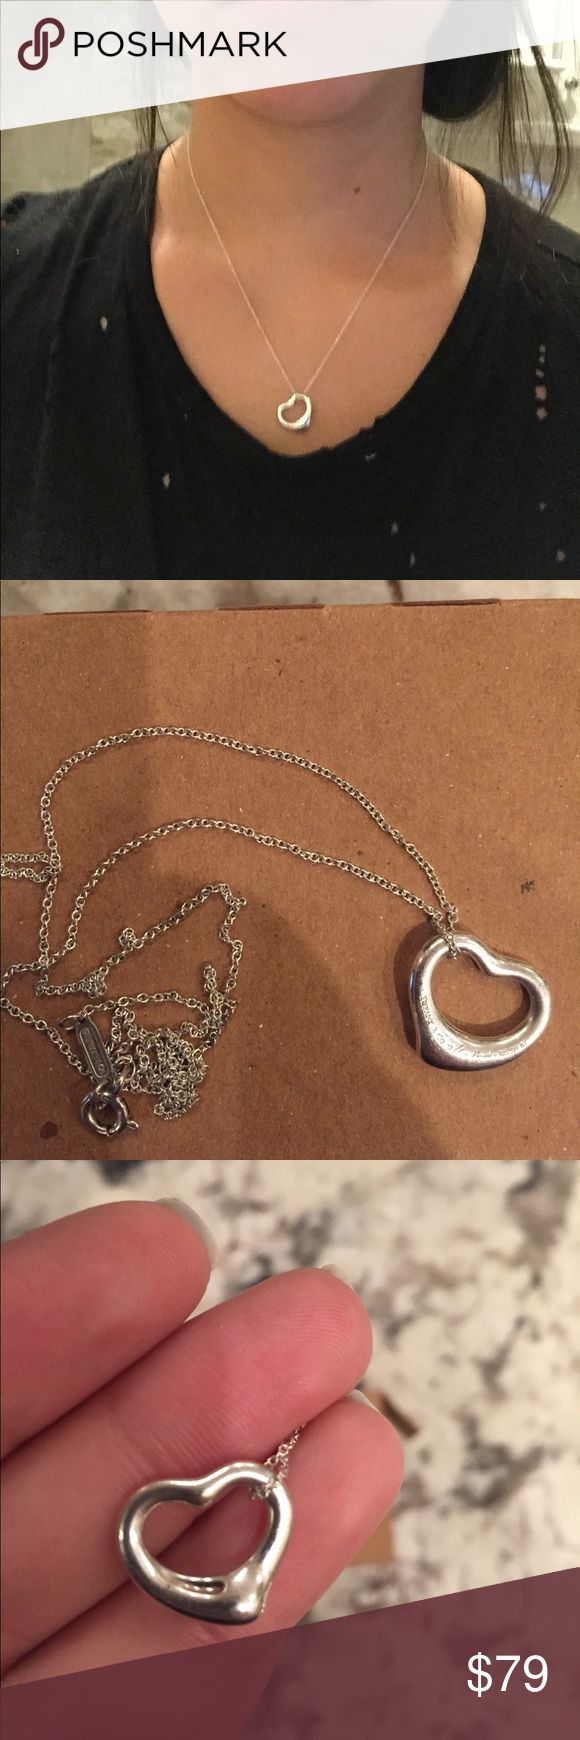 Tiffany heart necklace Authentic Tiffany necklace Tiffany & Co. Jewelry Necklaces